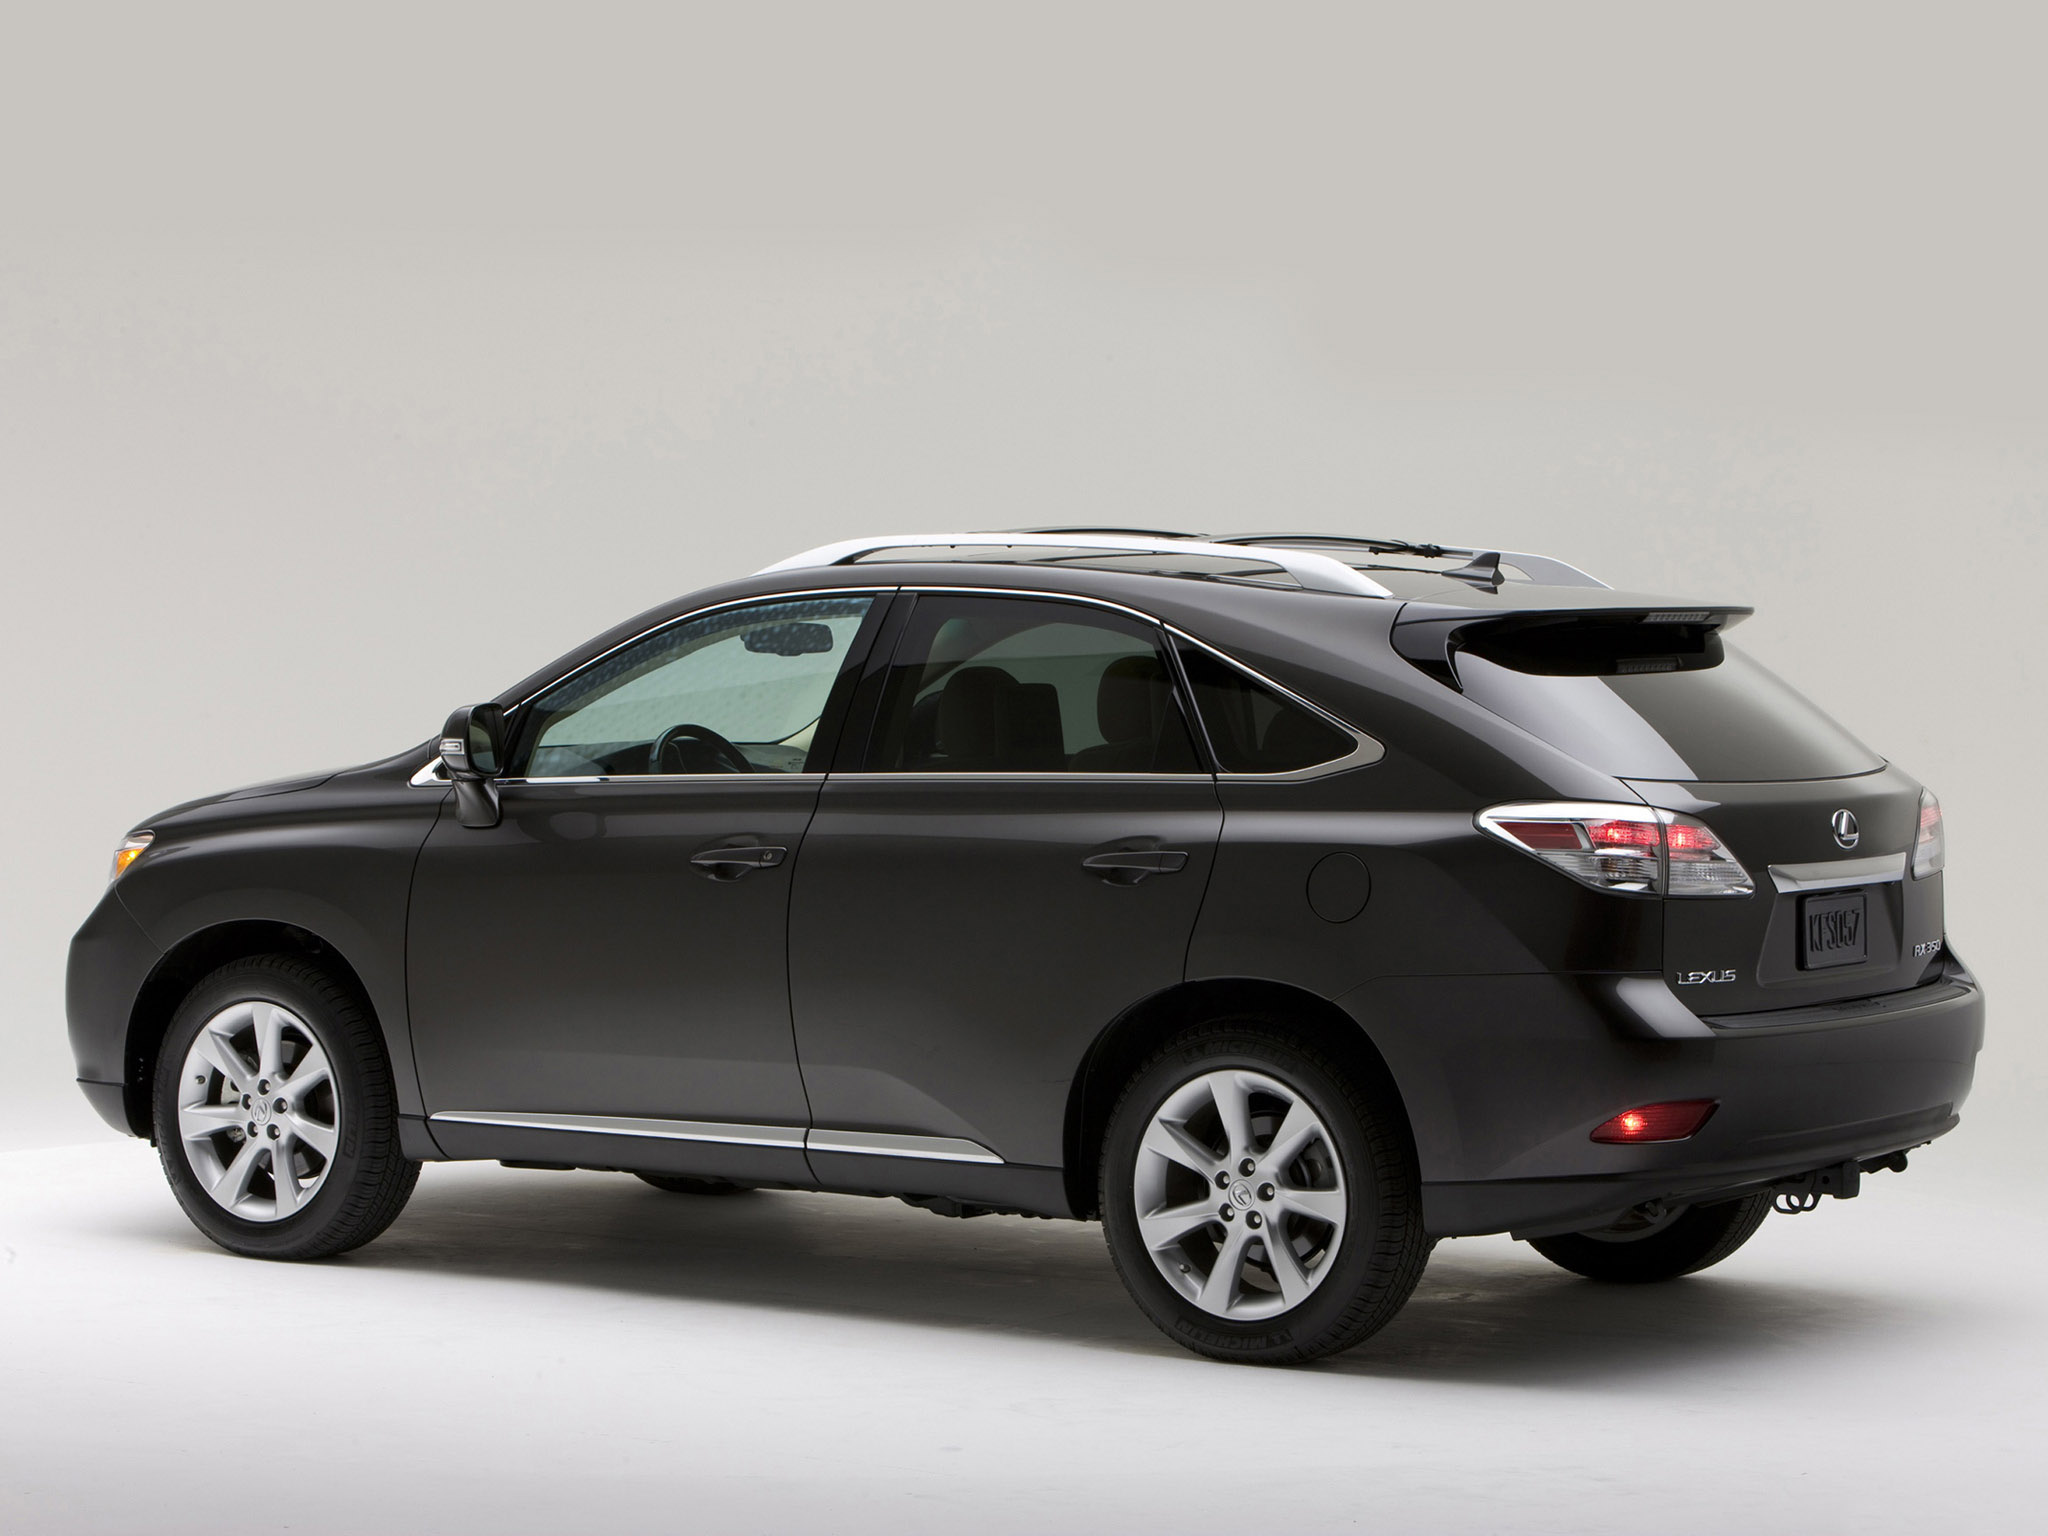 lexus rx 350 2009 lexus rx 350 2009 photo 10 car in pictures car photo gallery. Black Bedroom Furniture Sets. Home Design Ideas